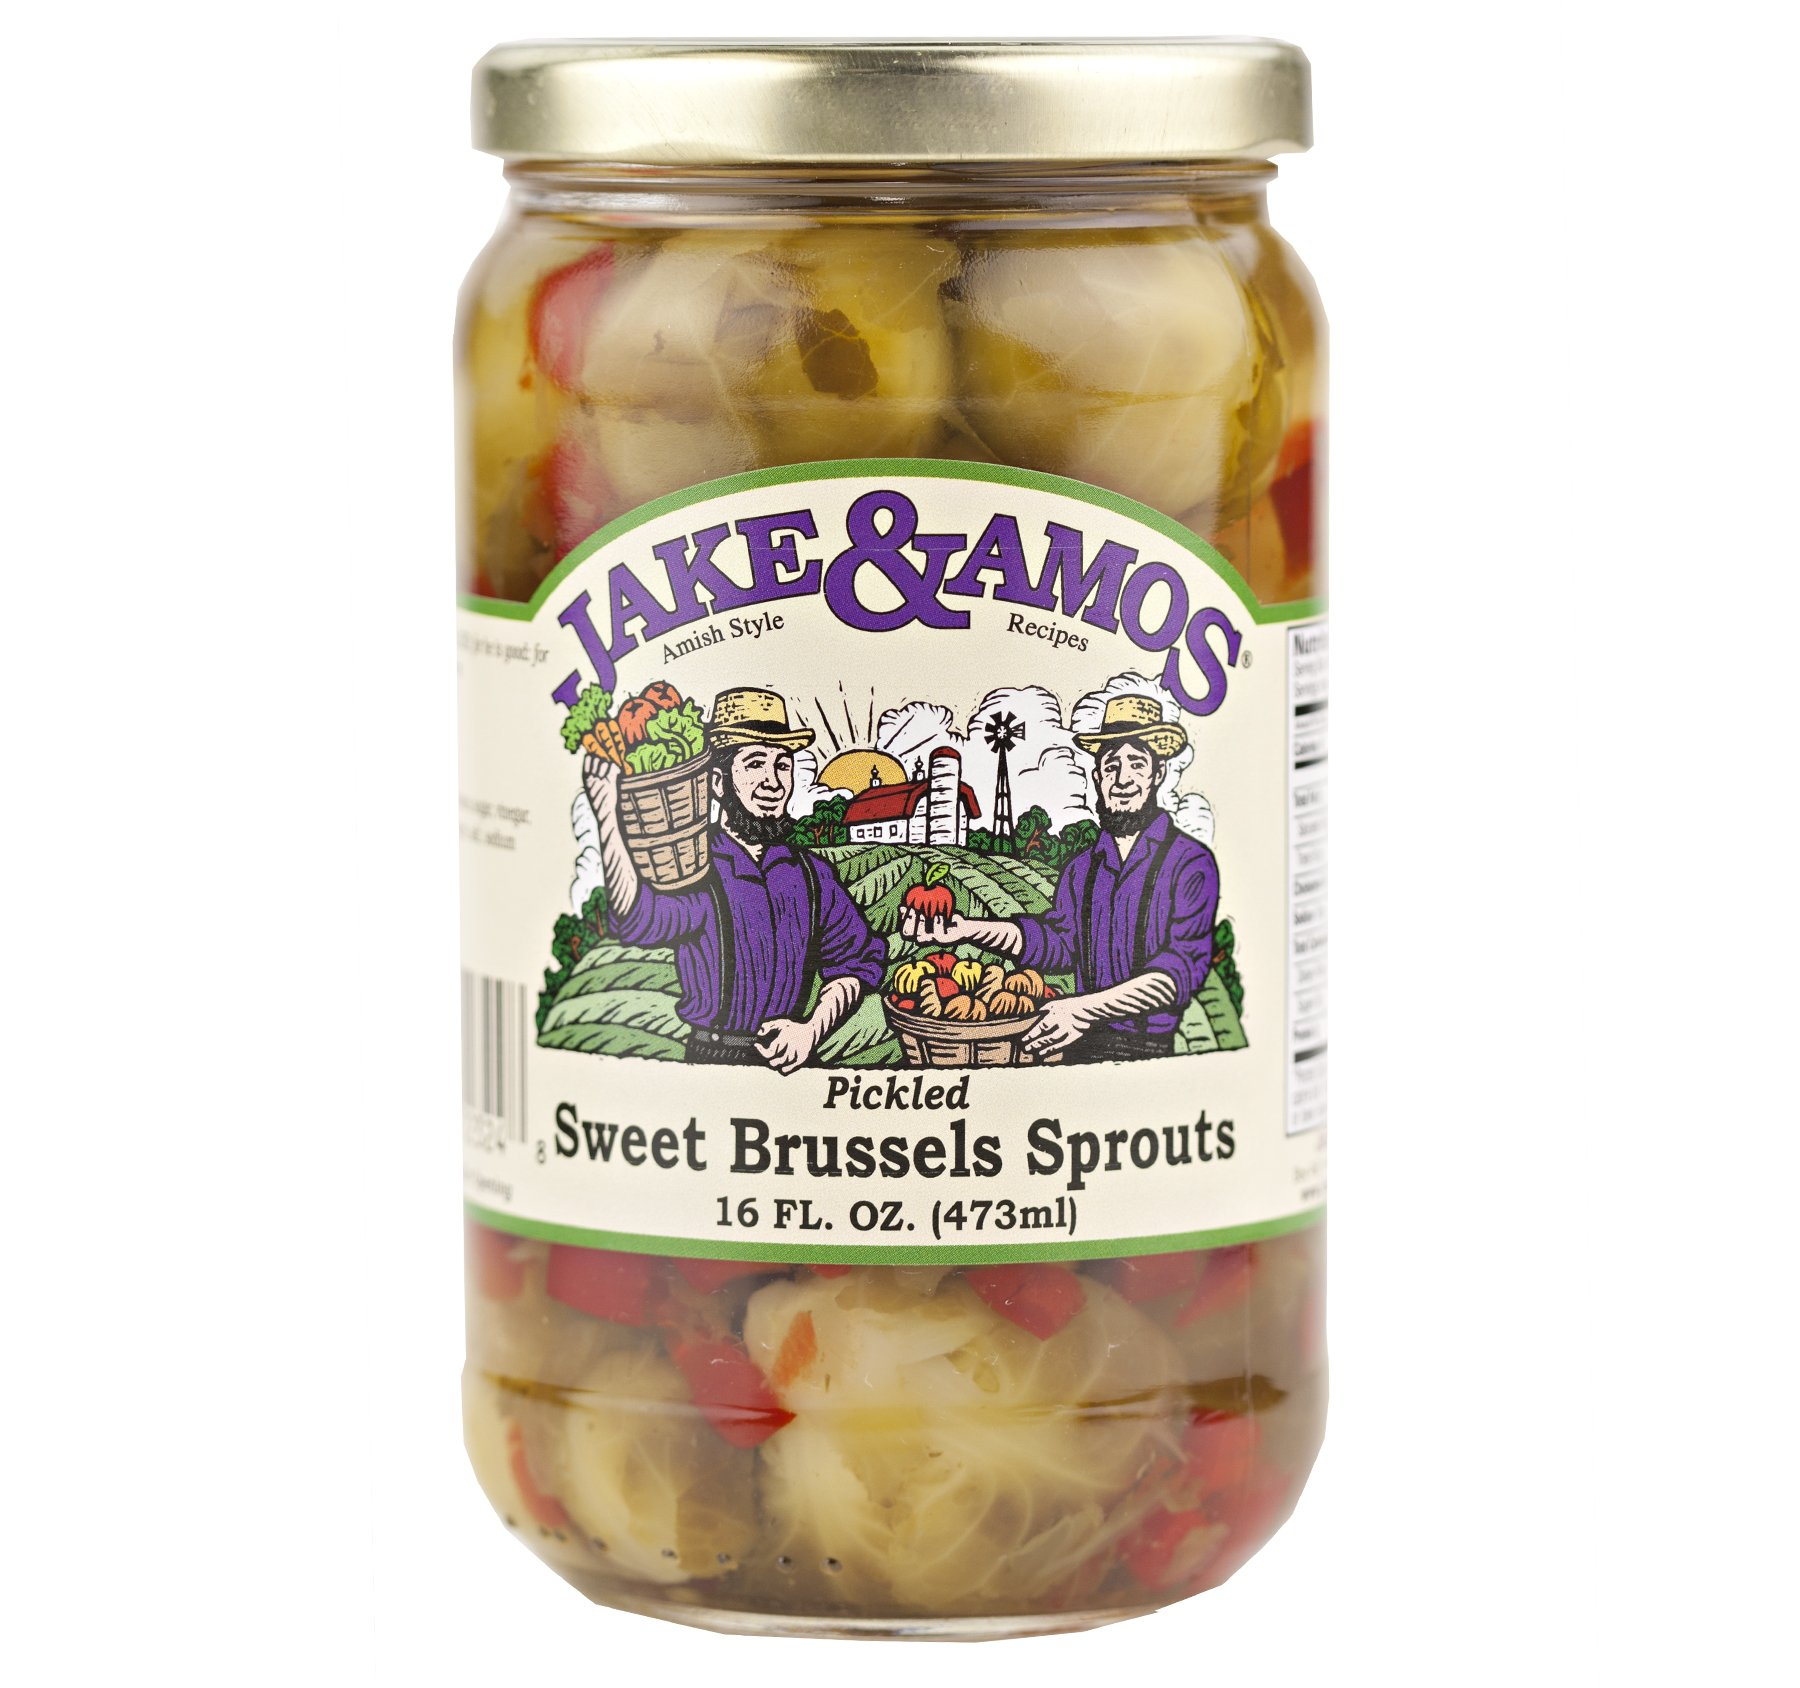 Jake & Amos Pickled Sweet Brussels Sprouts 16 oz. (3 Jars) by Jake & Amos®